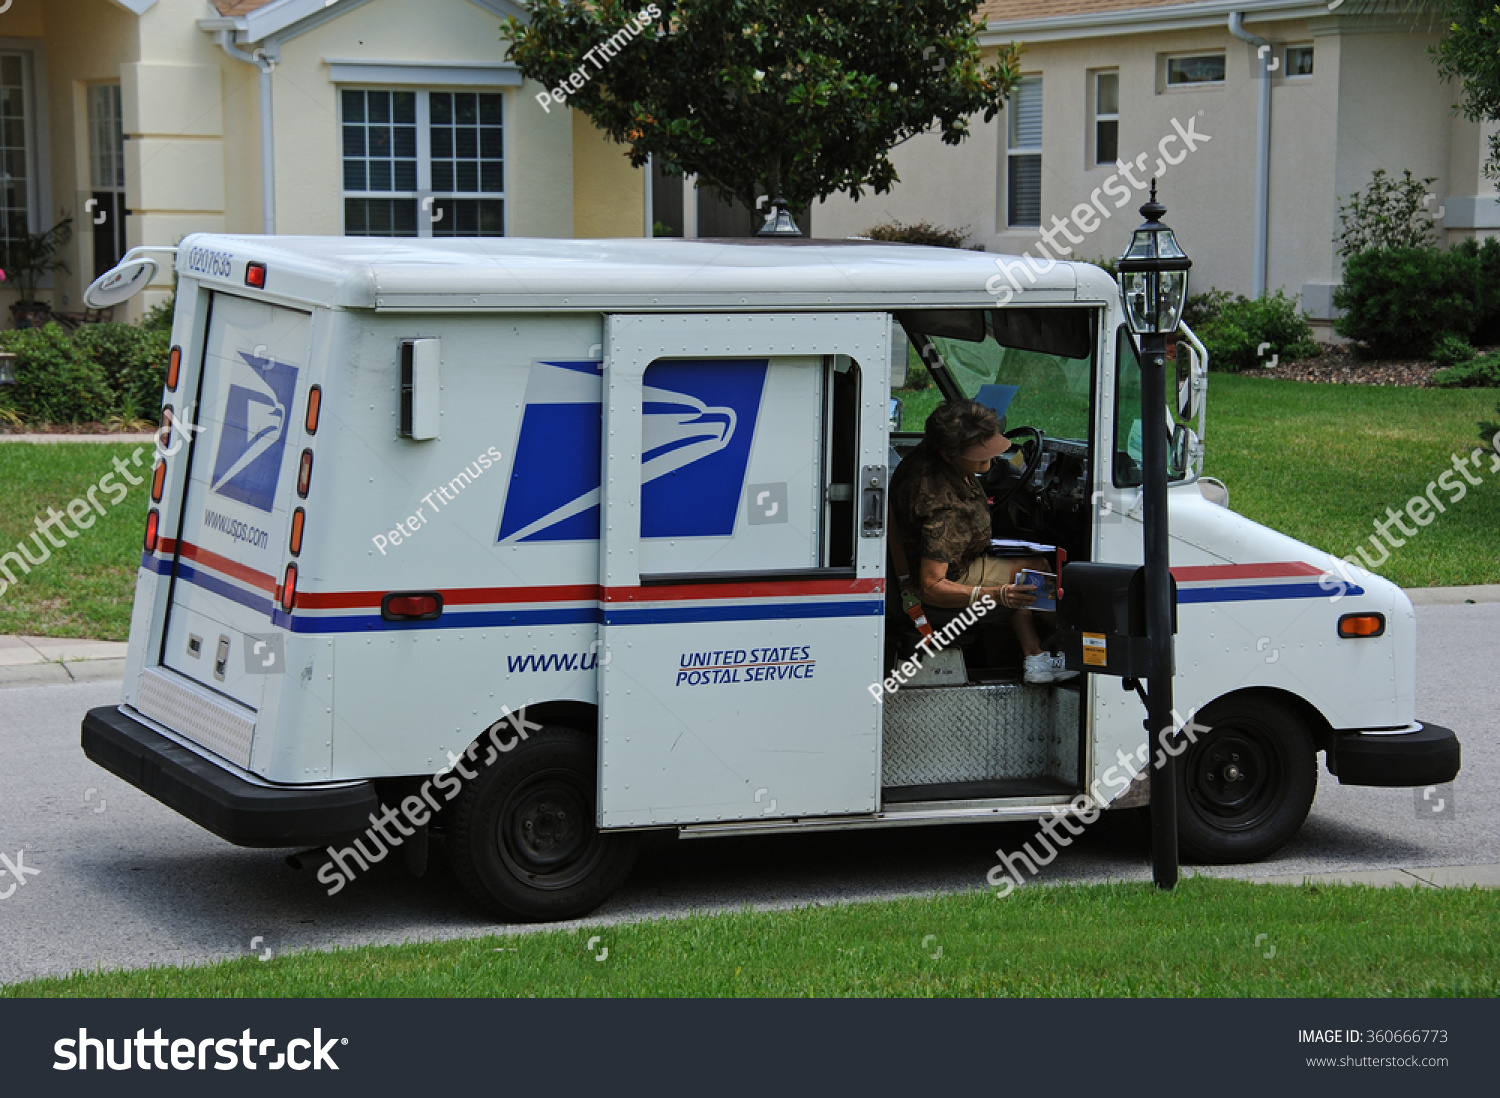 Us Post Vehicle In Summerfield Florida Usa - Circa 2014 ...